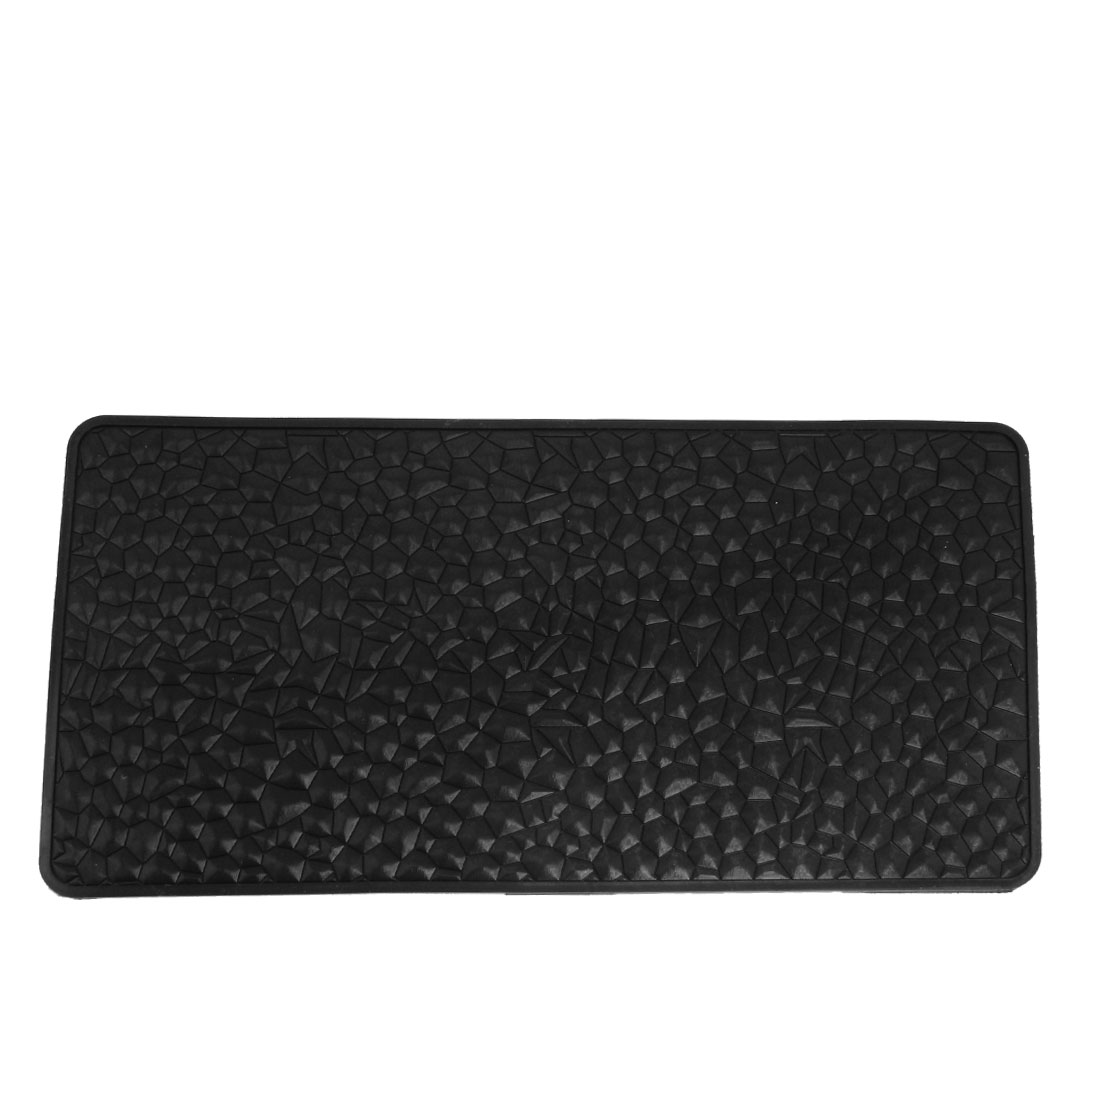 Auto Car Textured Water Cube Style Phone Holding Nonslip Rubber Pad Mat Black